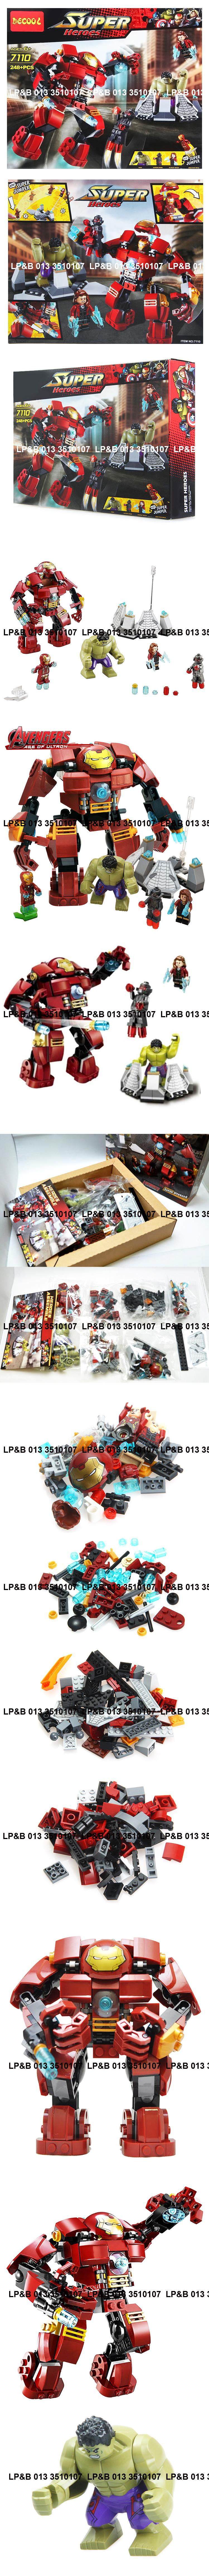 DECOOL 7110 Super Heroes Avengers Iron Man & Hulk Lego Bricks Set